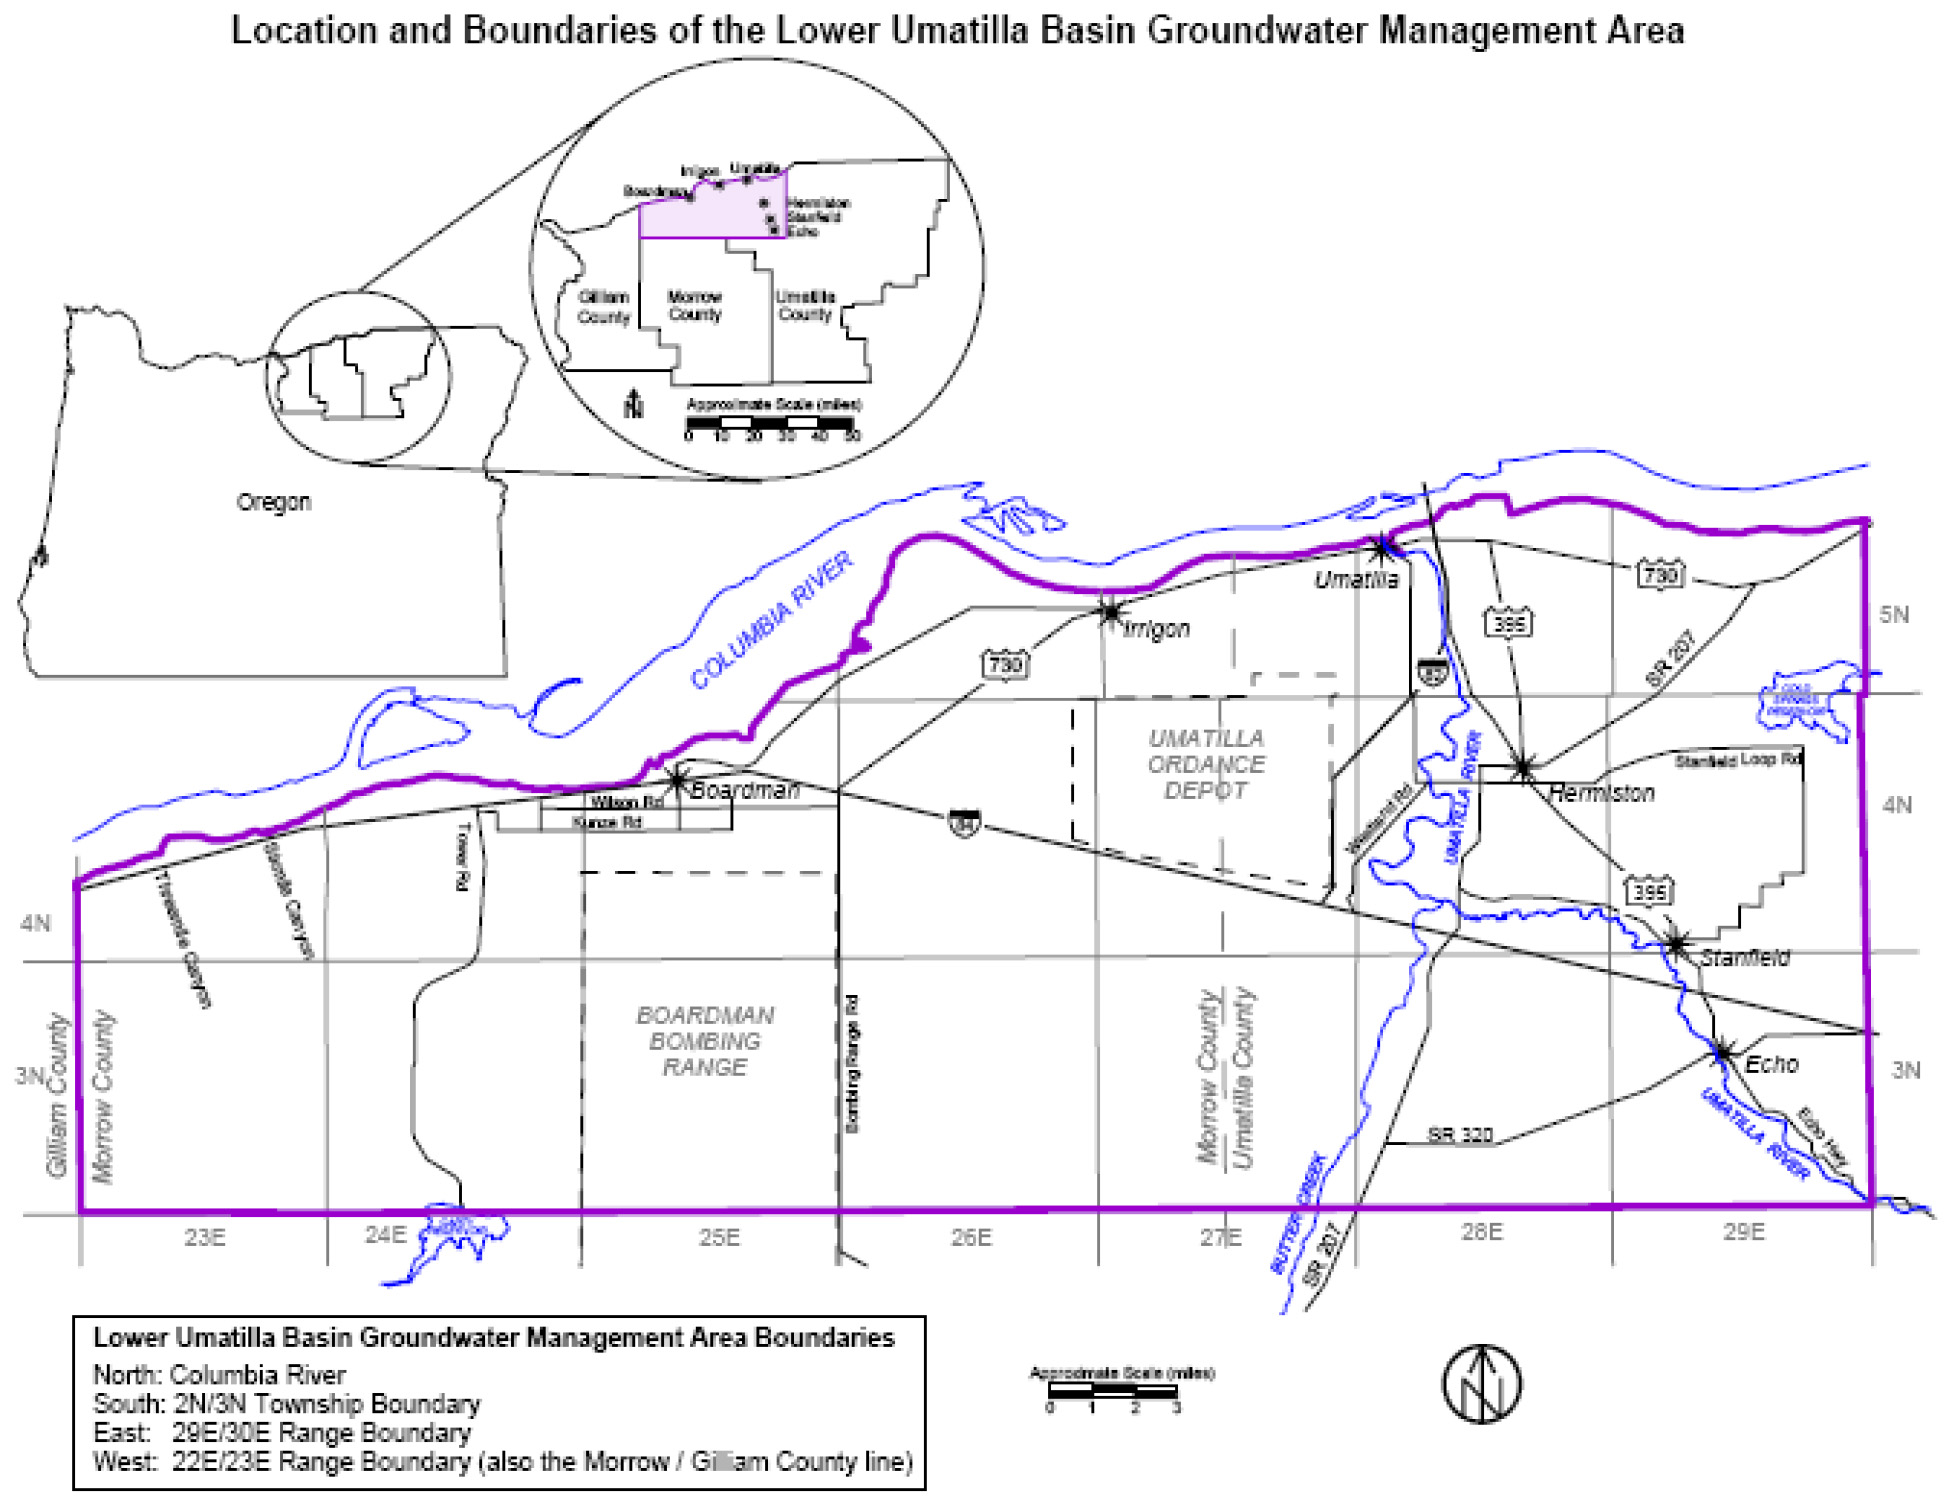 The Lower Umatilla Basin Groundwater Management Area Boundary designated by DEQ. Map and image courtesy of Oregon.gov